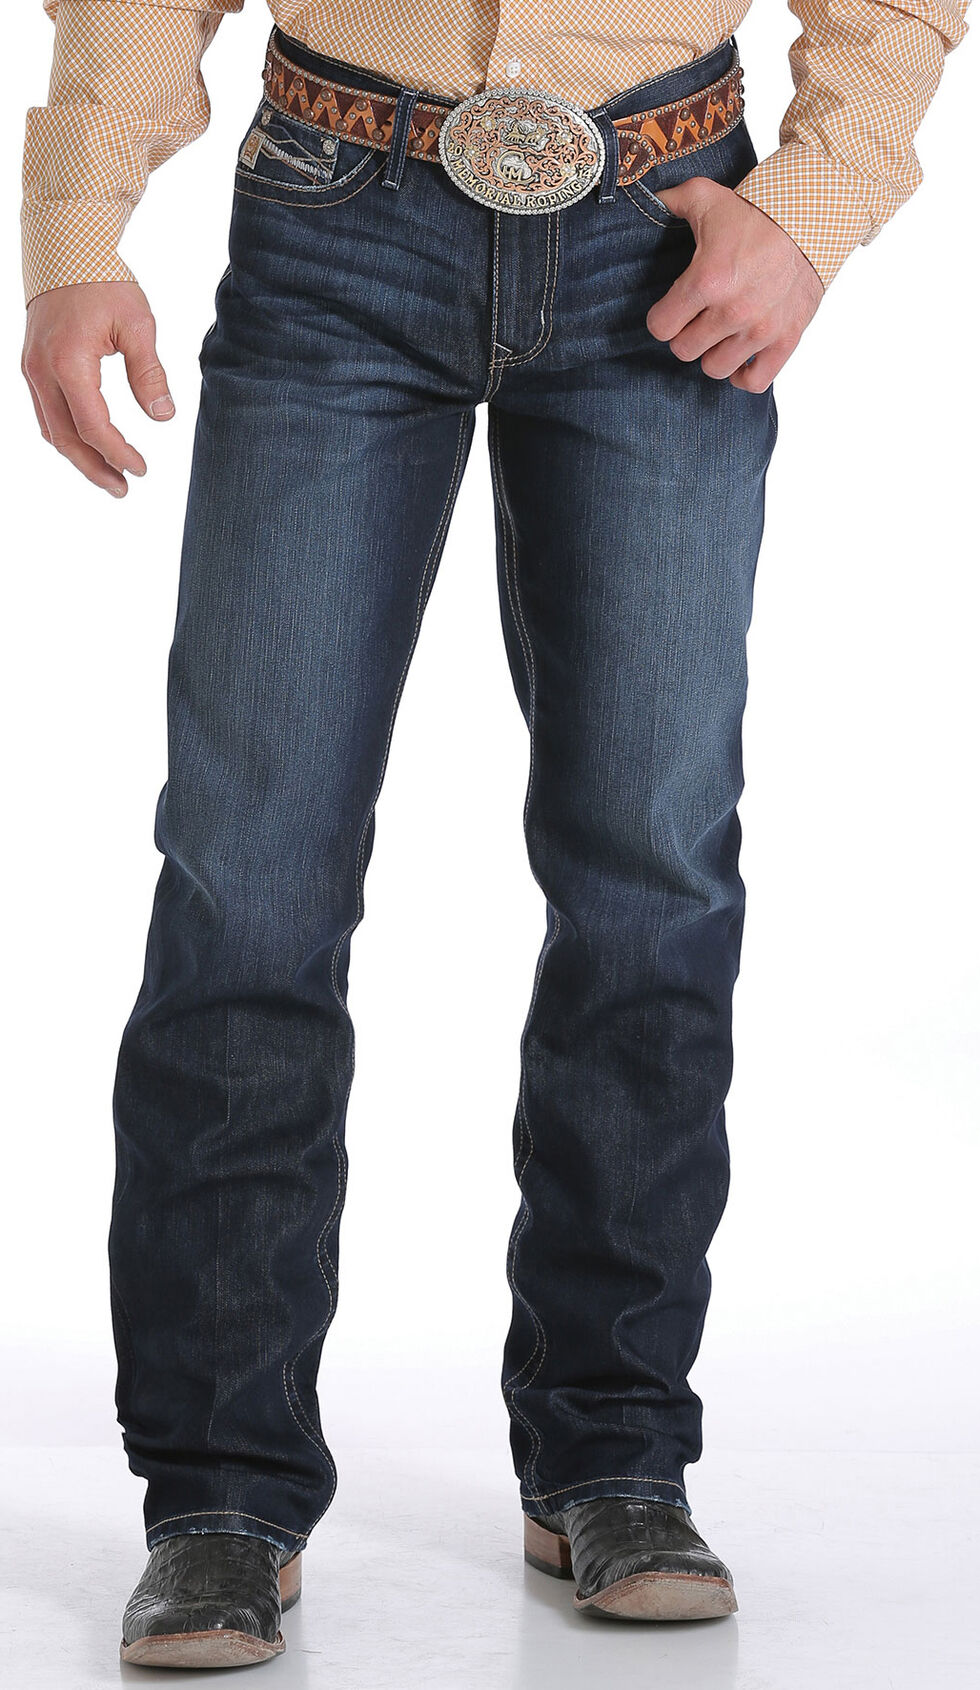 Cinch Men's Grant Mid Rise Performance Jeans - Relaxed Boot, Indigo, hi-res